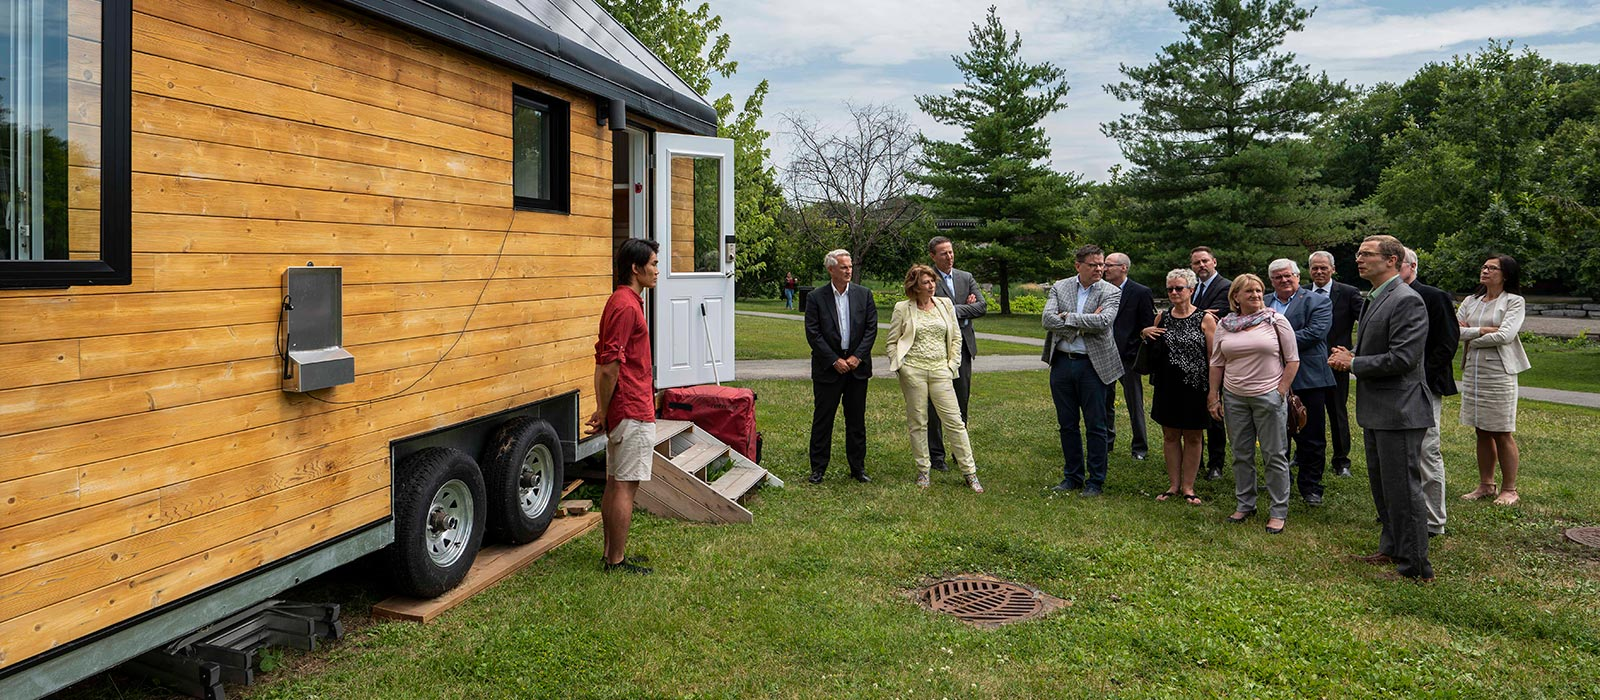 A small group tours outside the Northern Nomad tiny house, which overlooks the Rideau River near Richcraft Hall at Carleton University